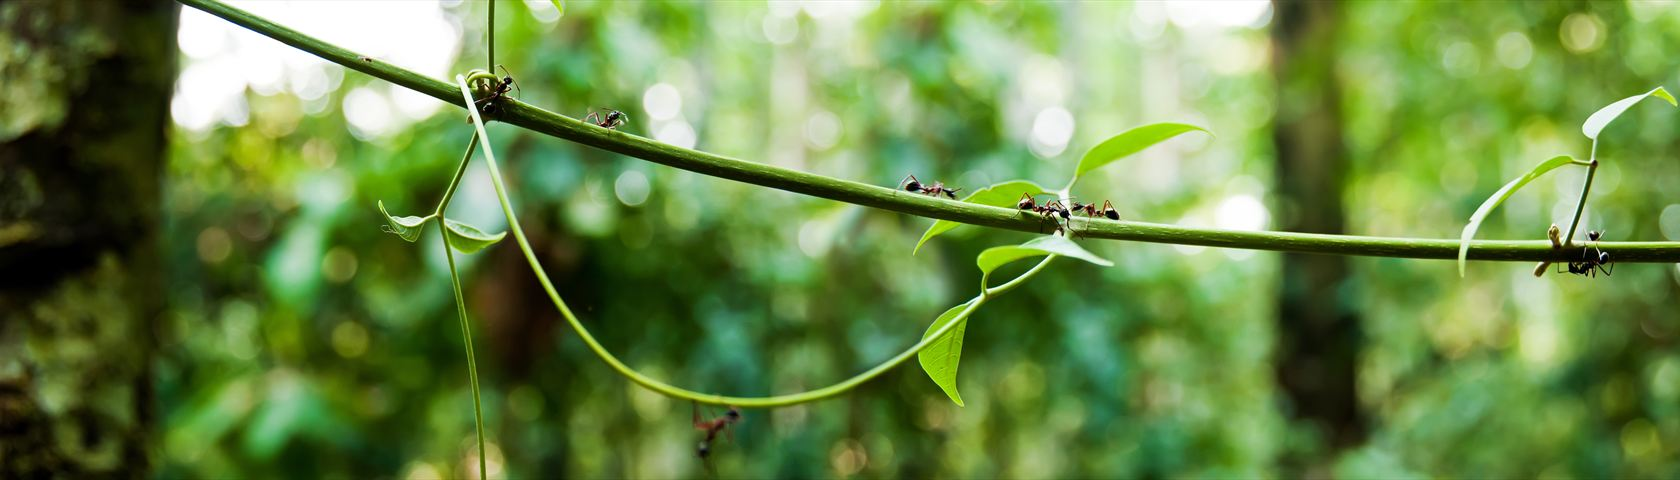 Ants on a Vine